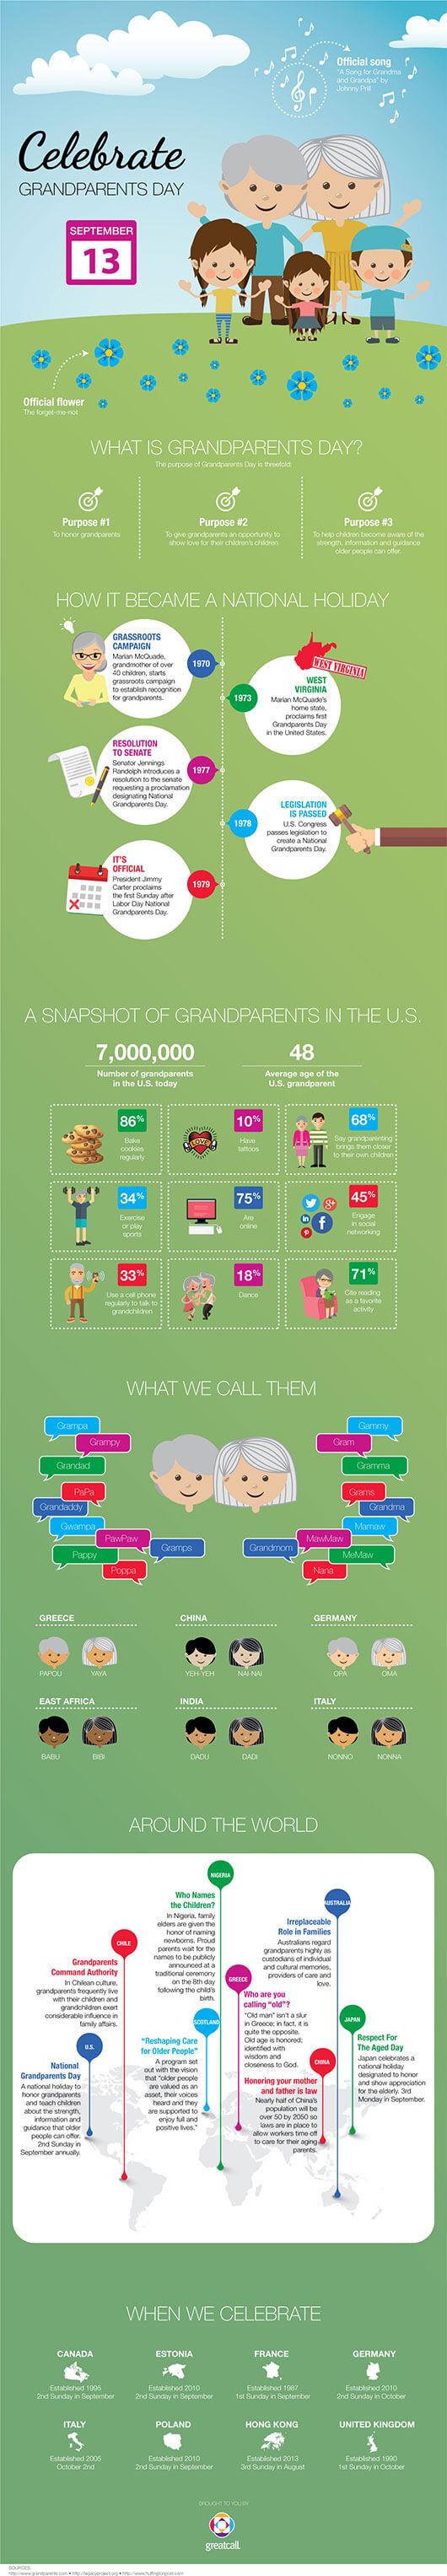 Grandparents' Day Infographic